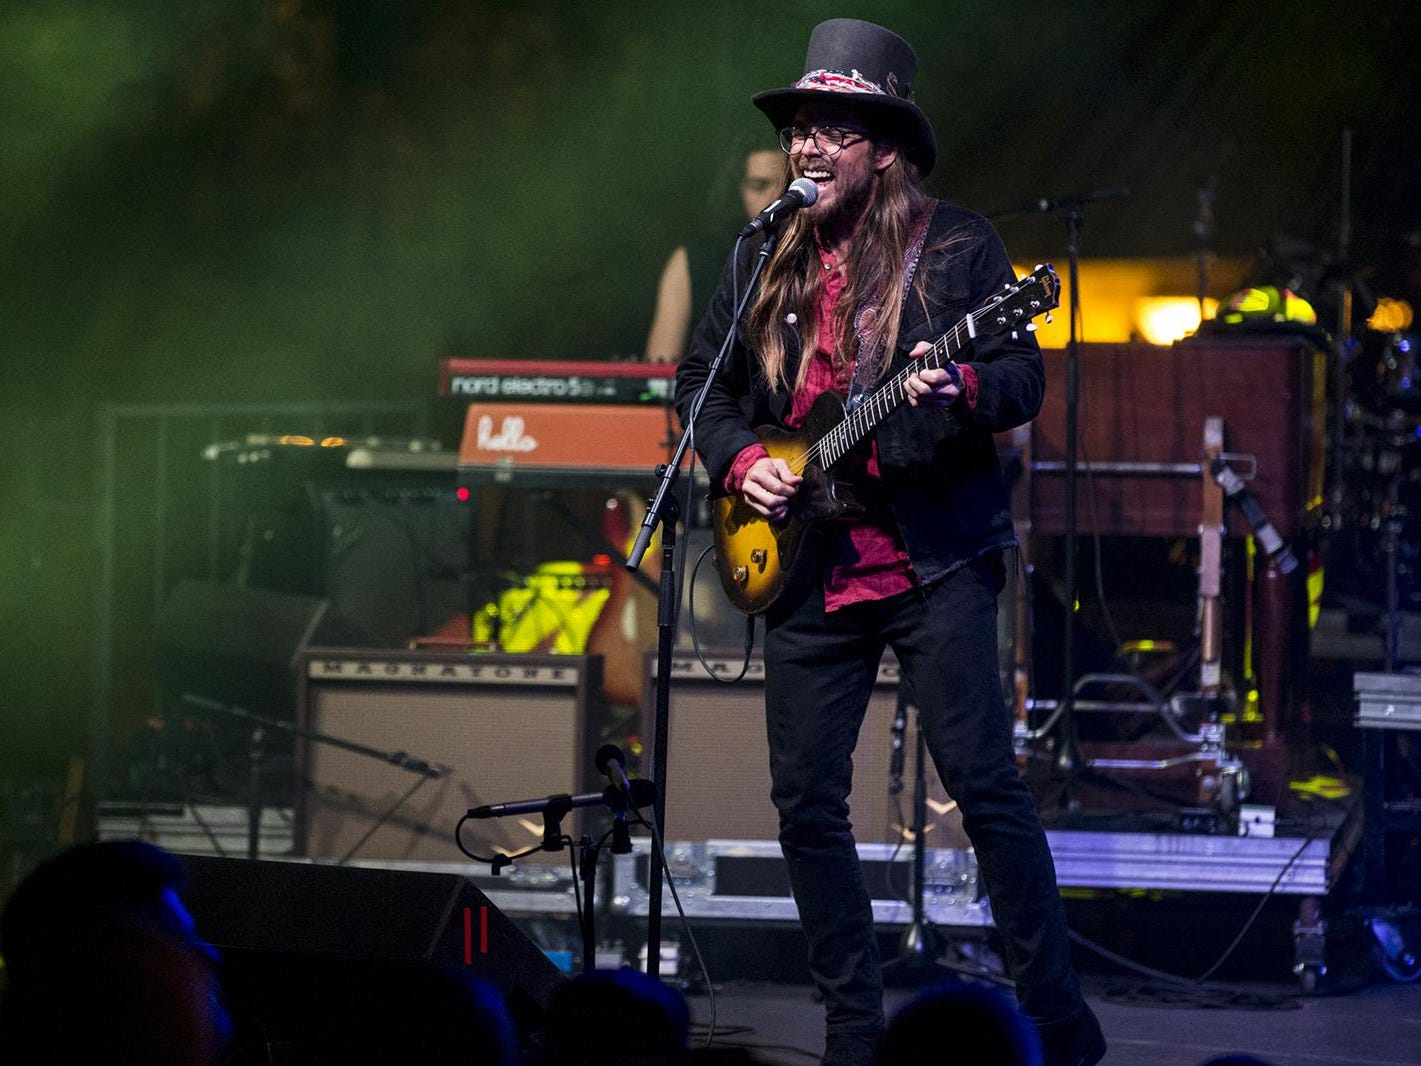 Lukas Nelson & Promise of the Real perform during McDowell Mountain Music Festival on Friday, March 1, 2019, at Margaret T. Hance Park in Phoenix.